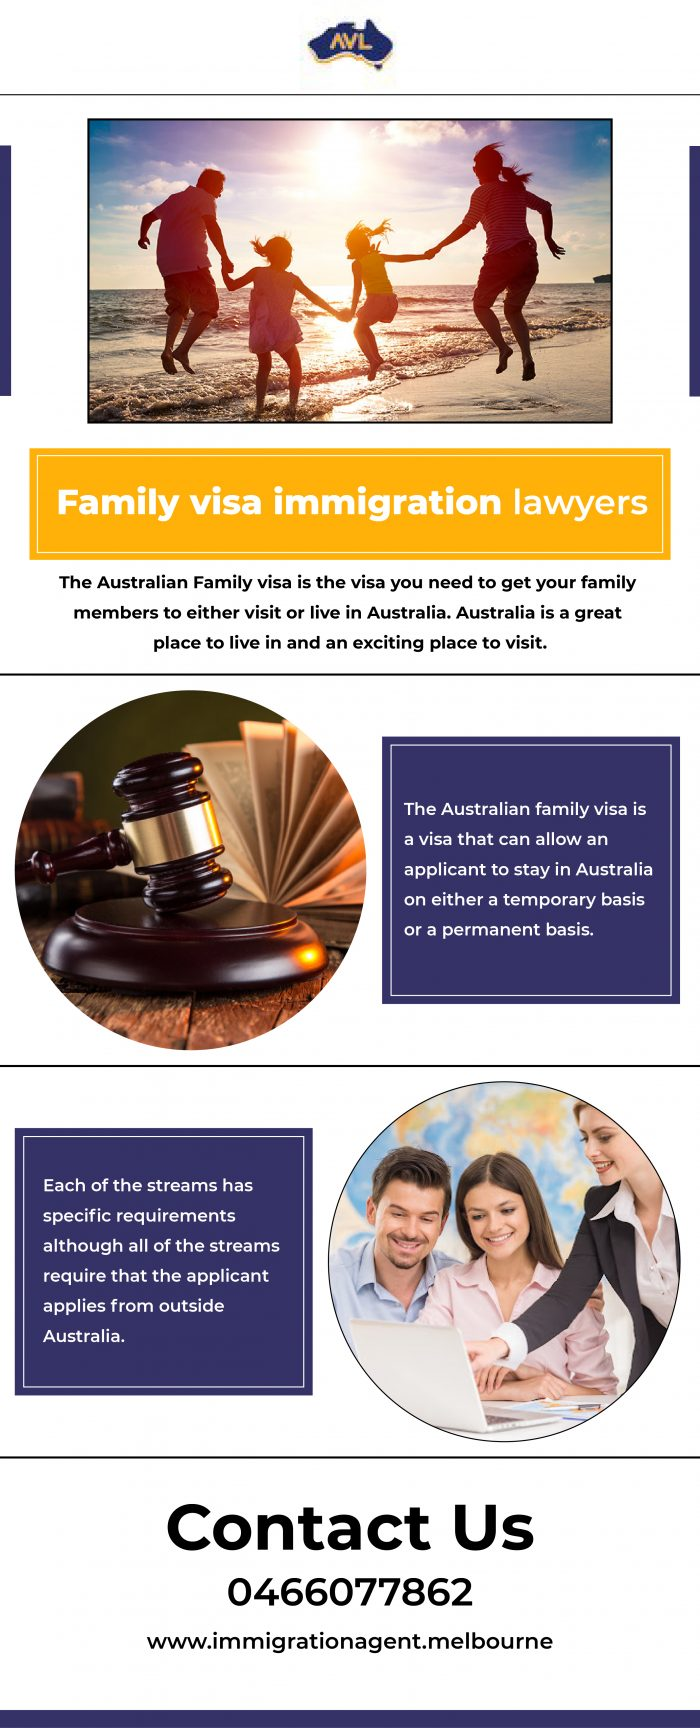 Family visa immigration lawyers – Immigration Agents Melbourne